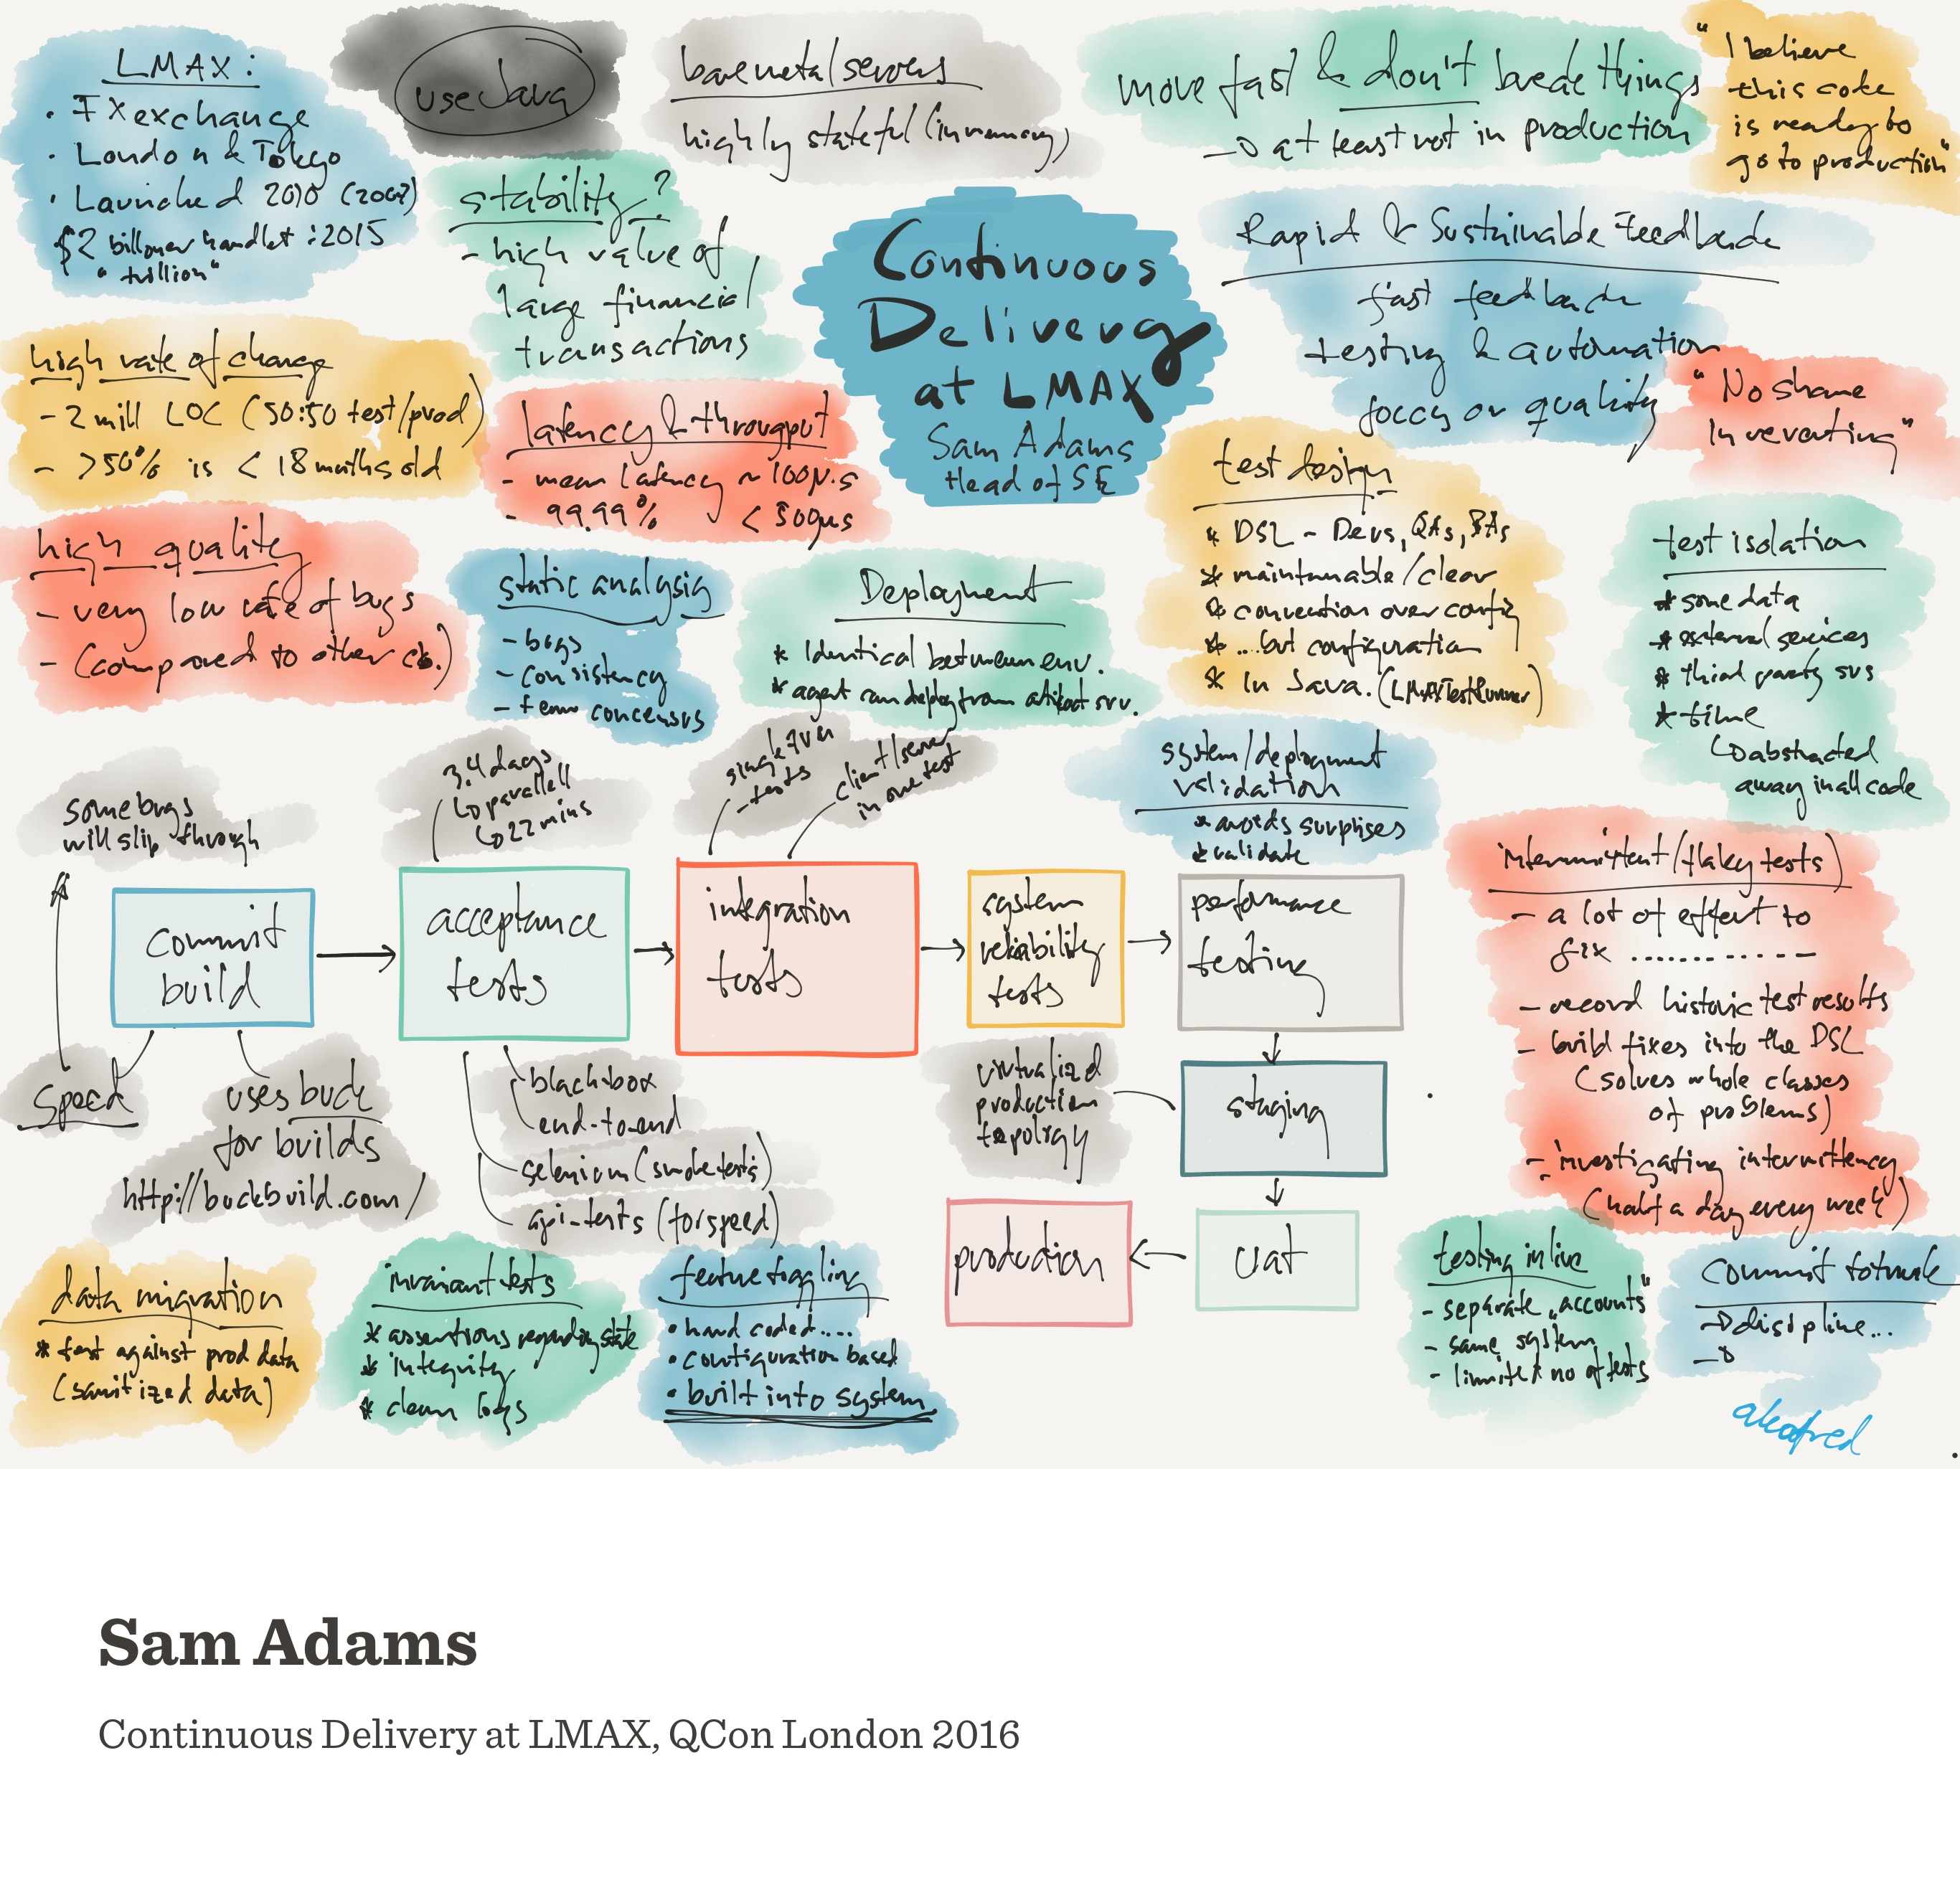 Notes from Continuous Delivery at LMAX (Sam Adams)